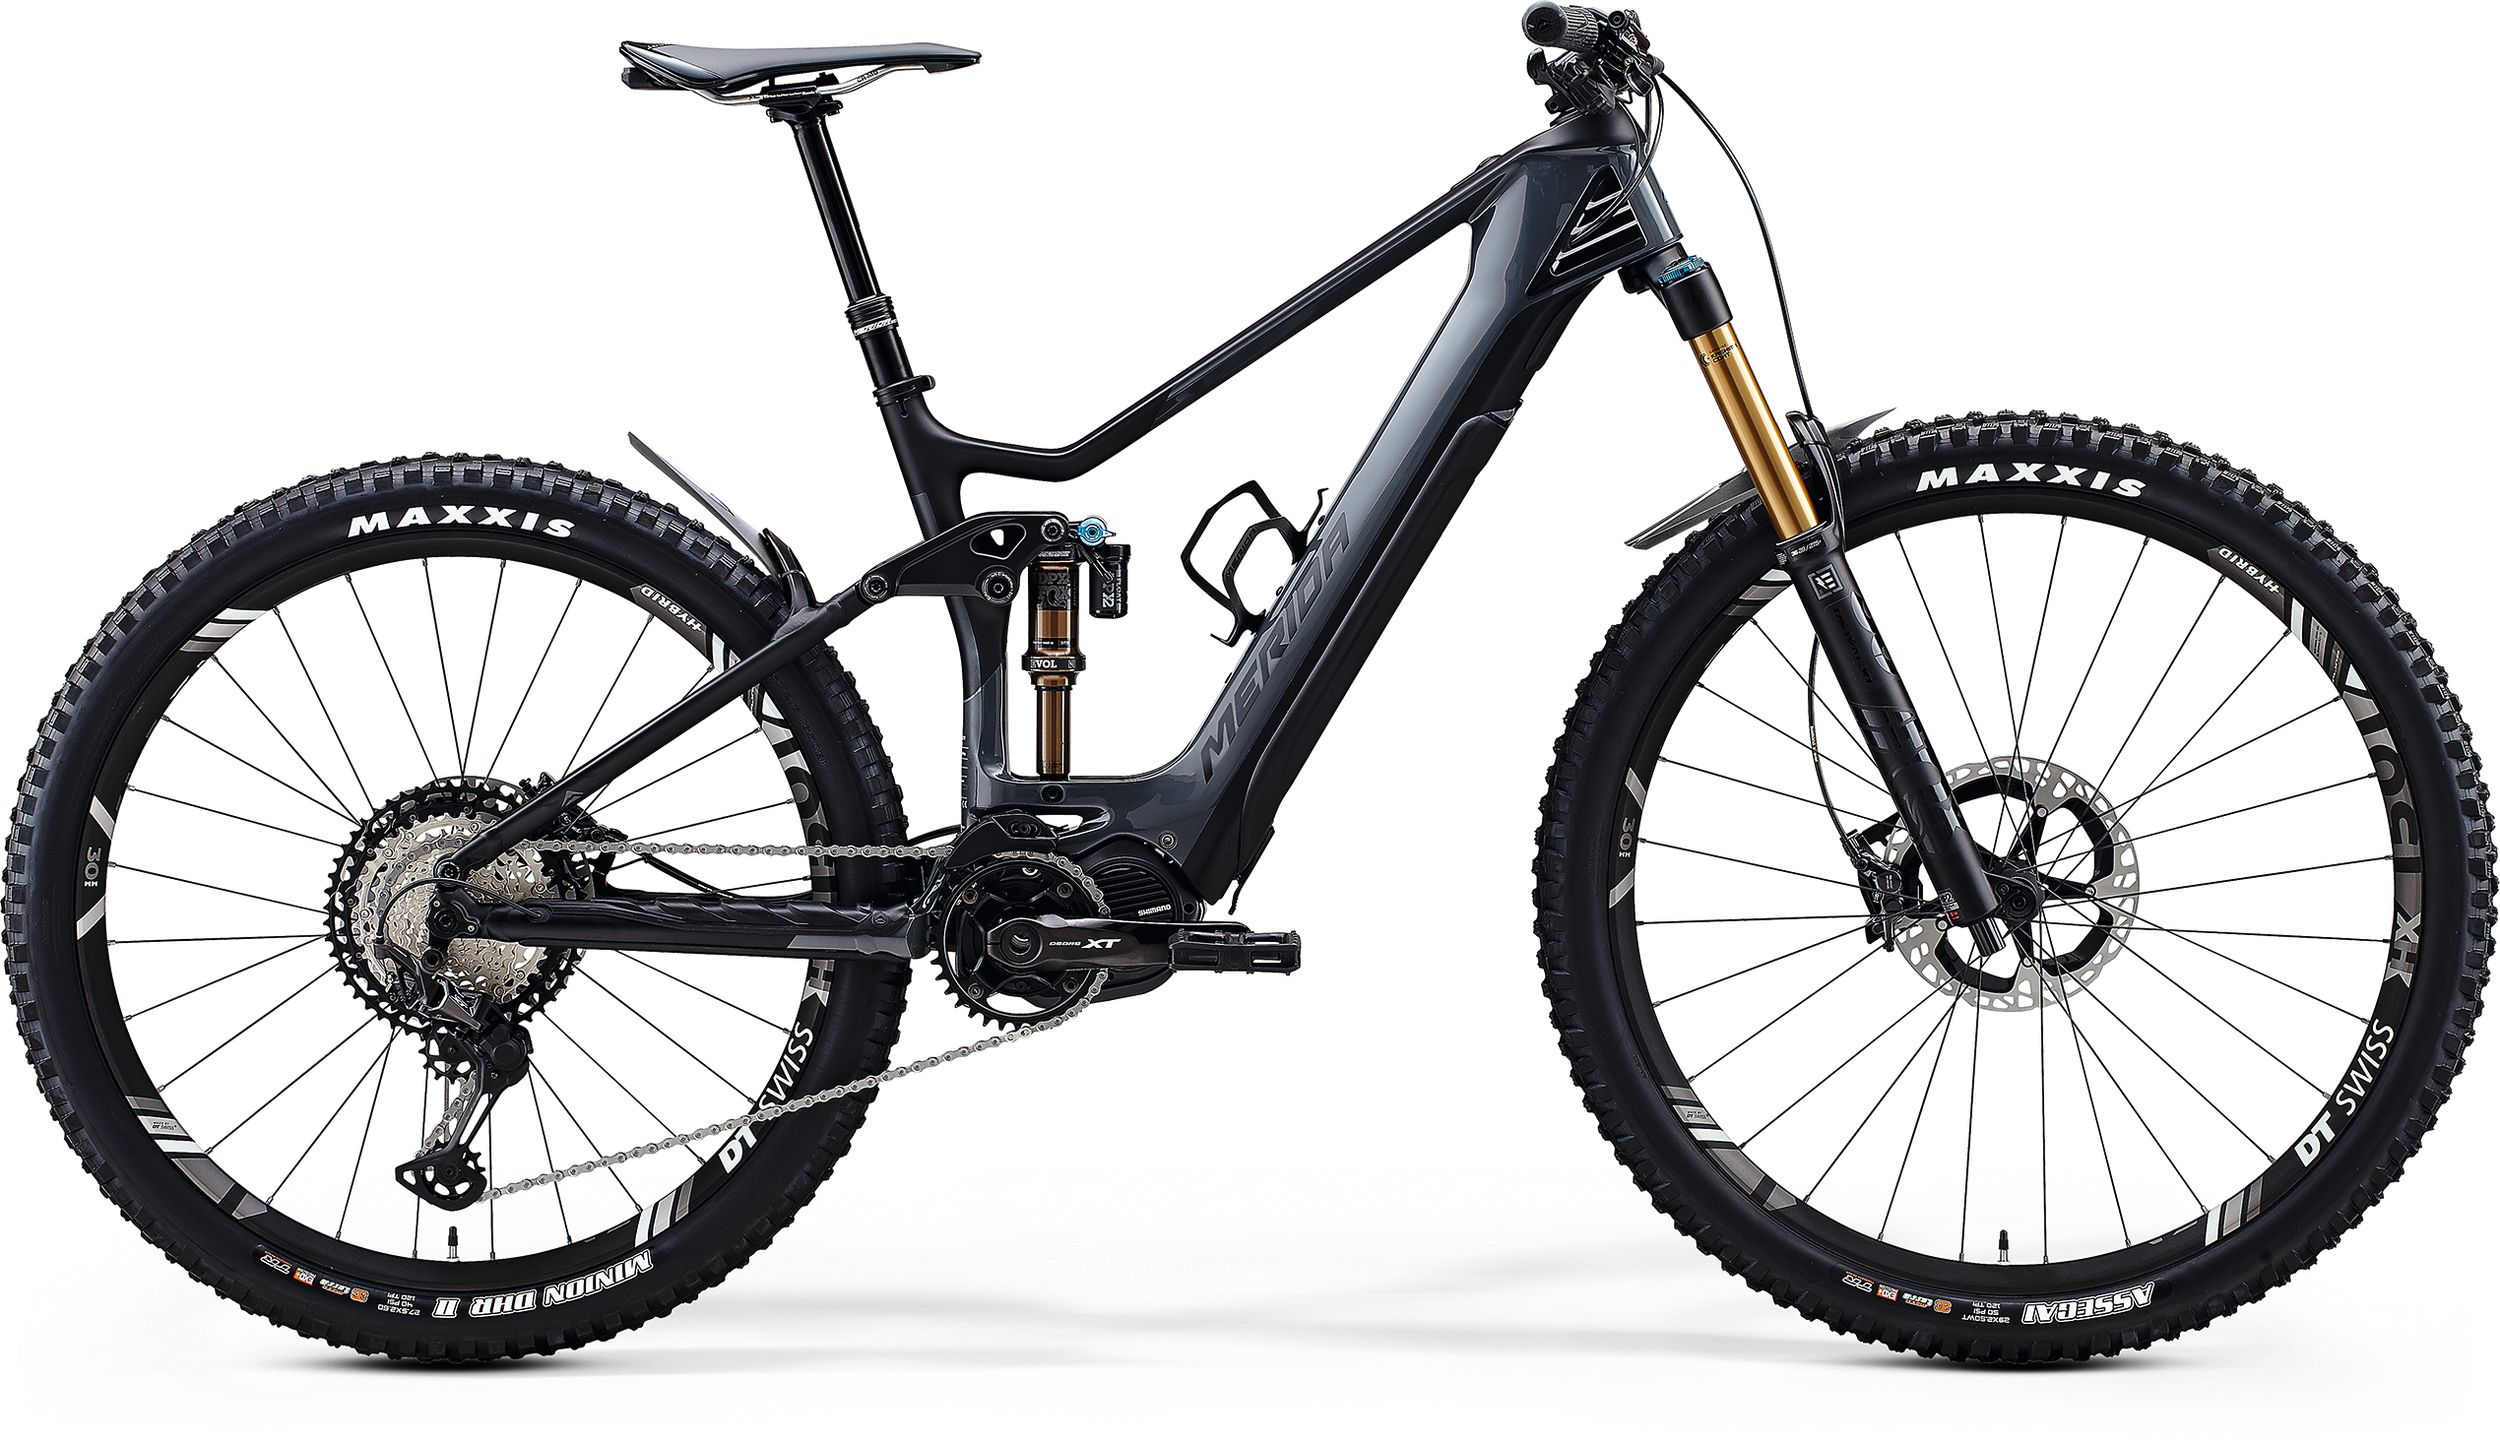 2020 MERIDA E ONE-SIXTY 9000 CARBON